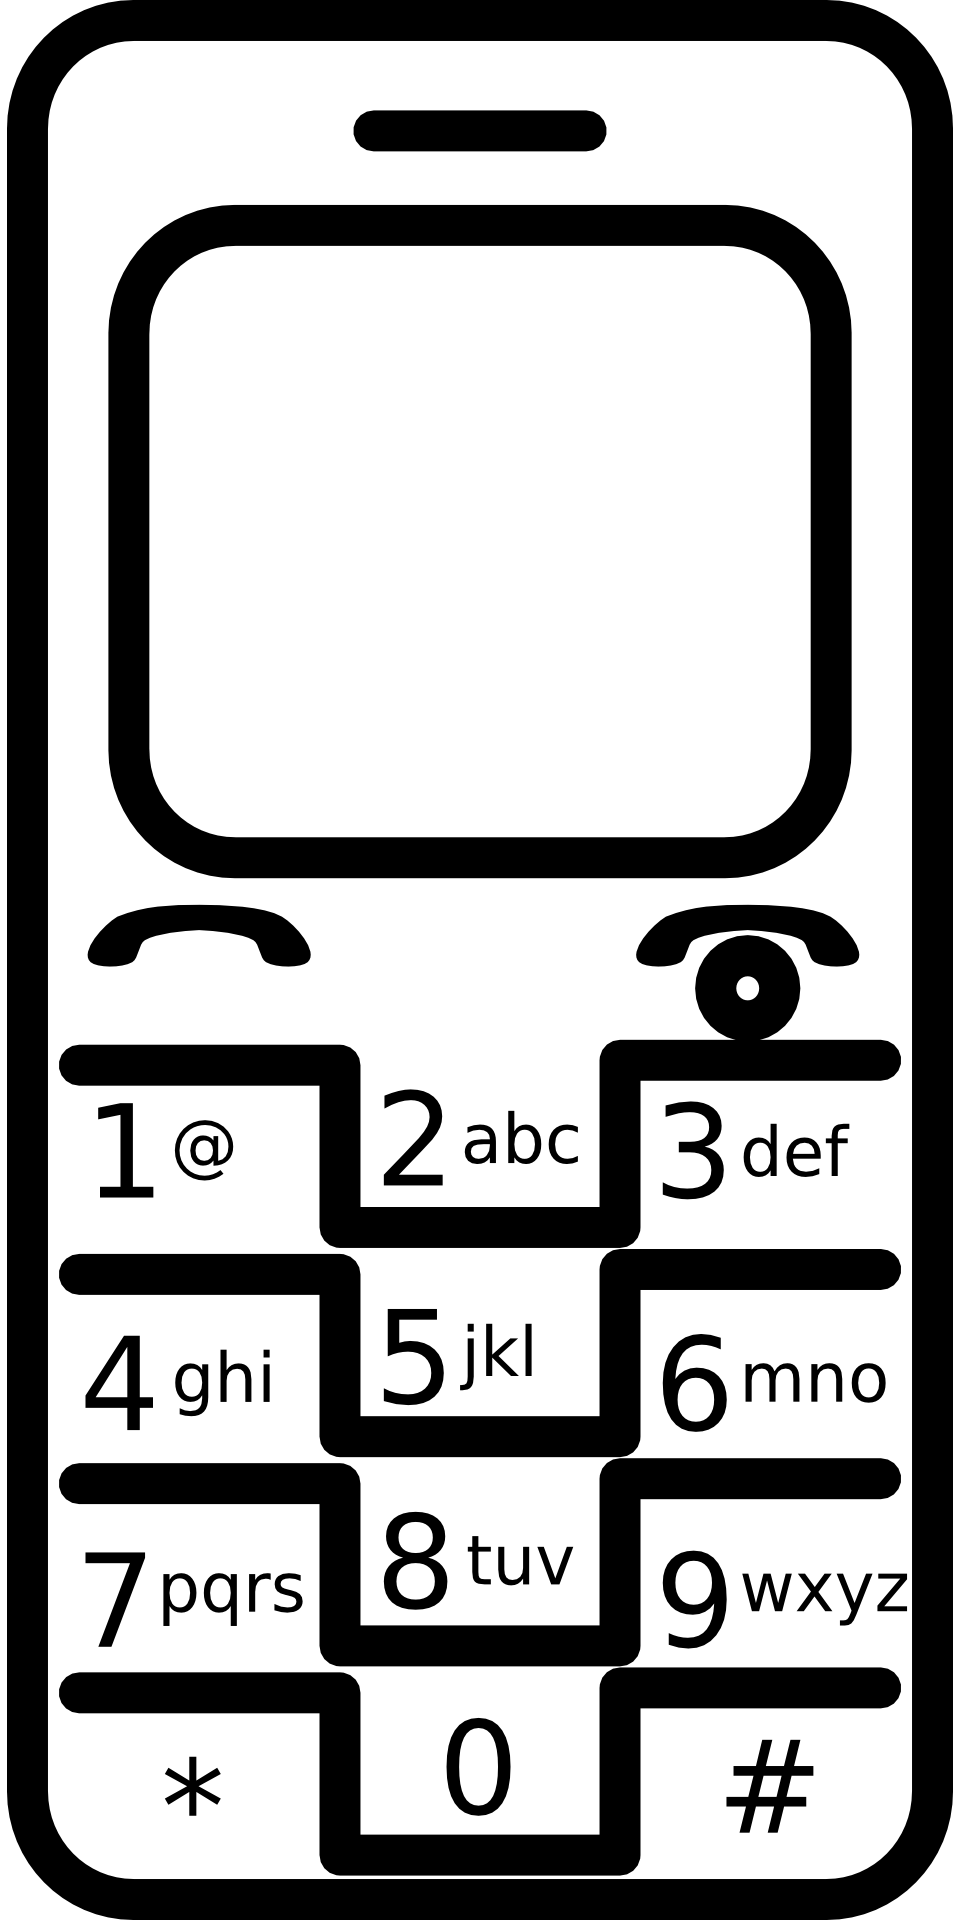 Telefono Movil Para Colorear on I Worksheets For Preschool